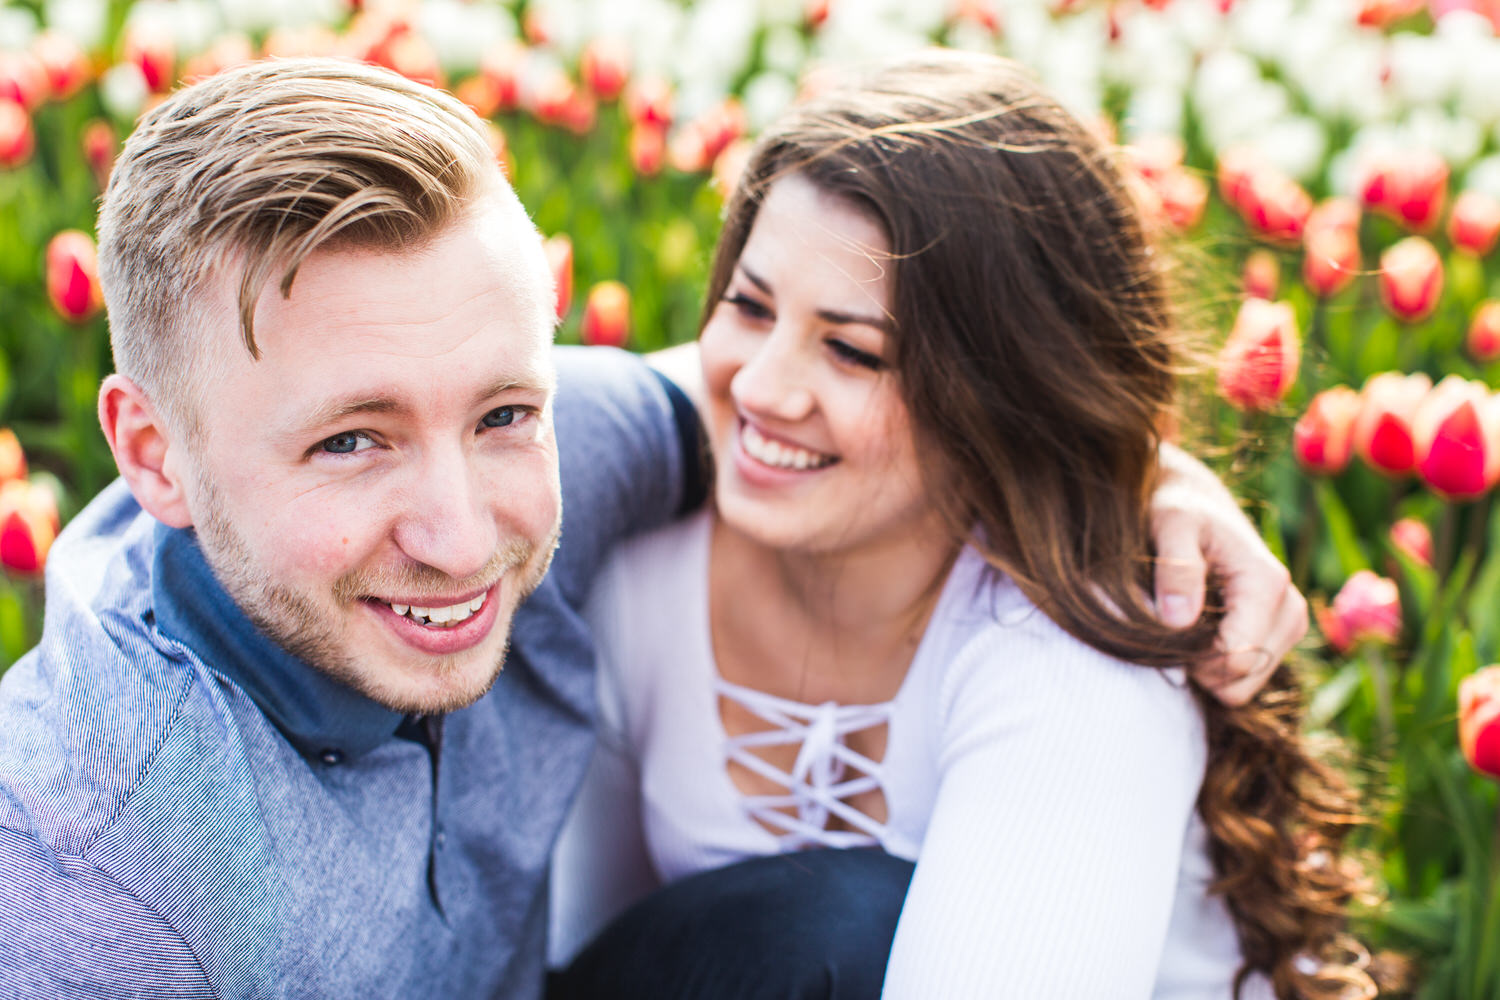 An engagment session shot at the Abbotsford Tulip Festival